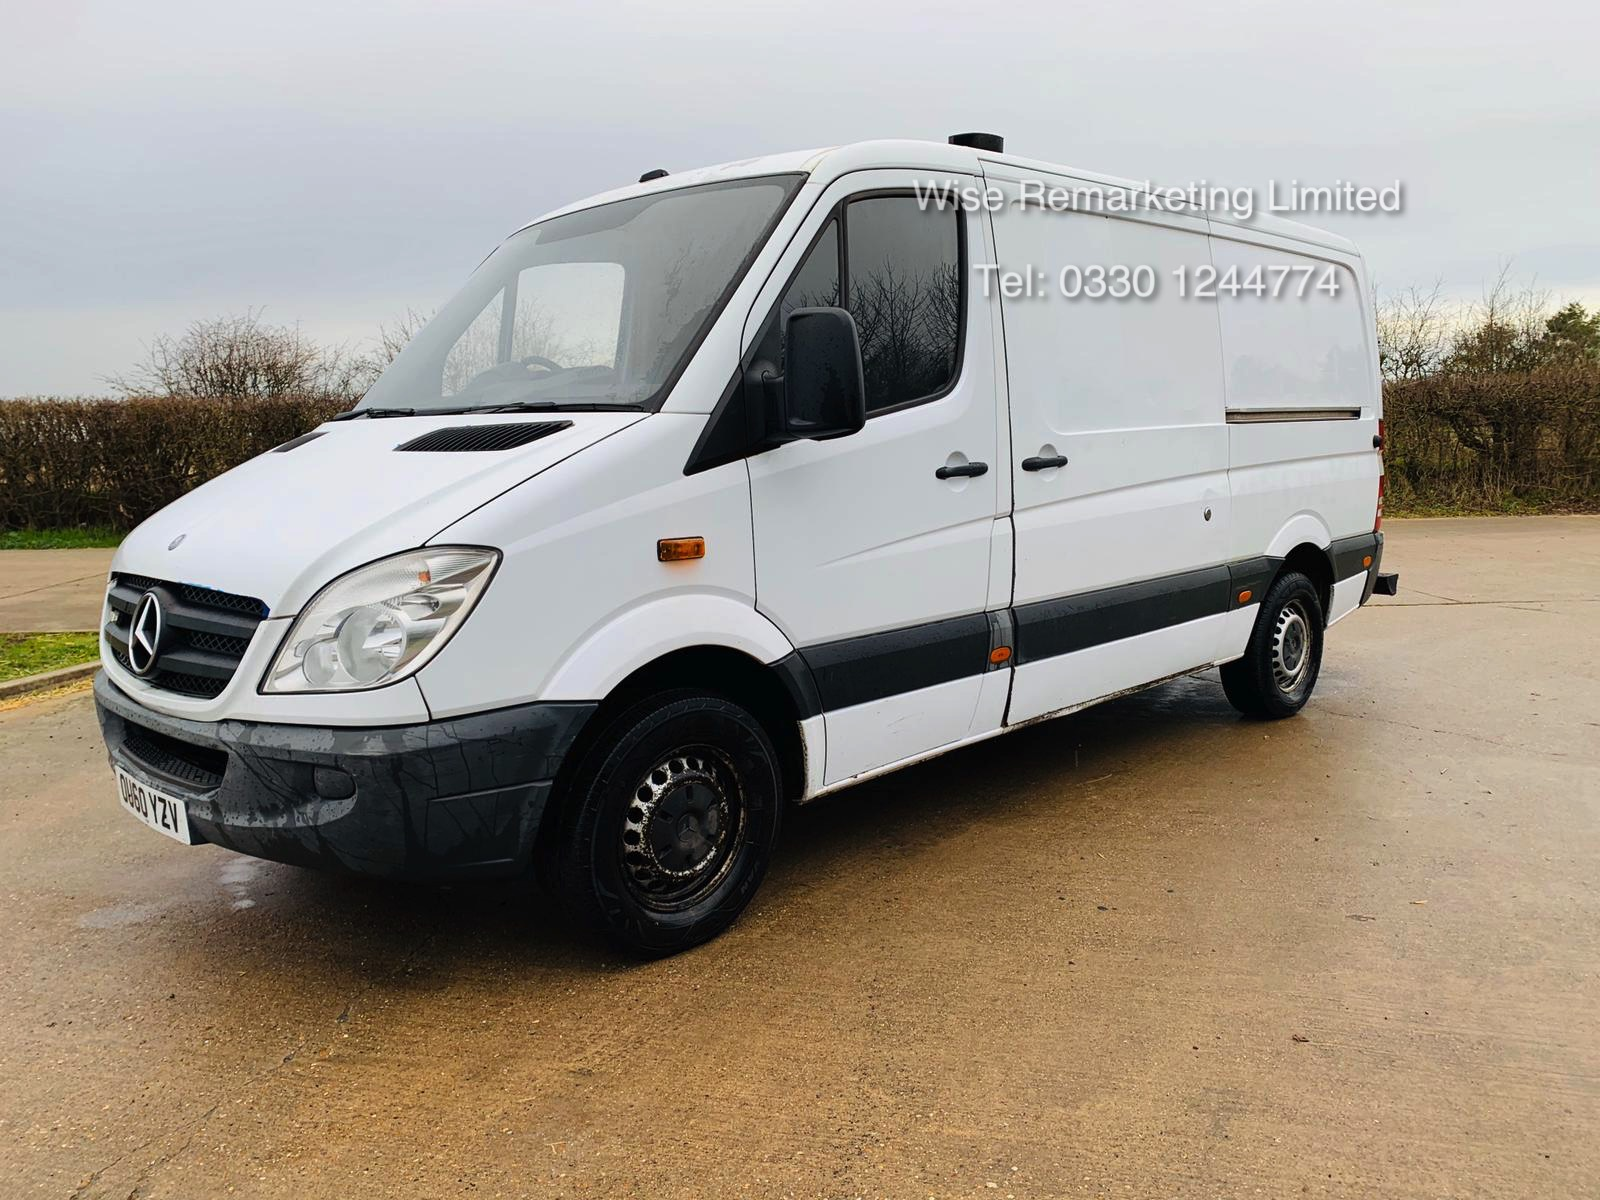 Reserve Met Mercedes Sprinter 313 CDI 2.1 TD *Automatic Triptronic Gearbox* - 2011 Model - Ply Lined